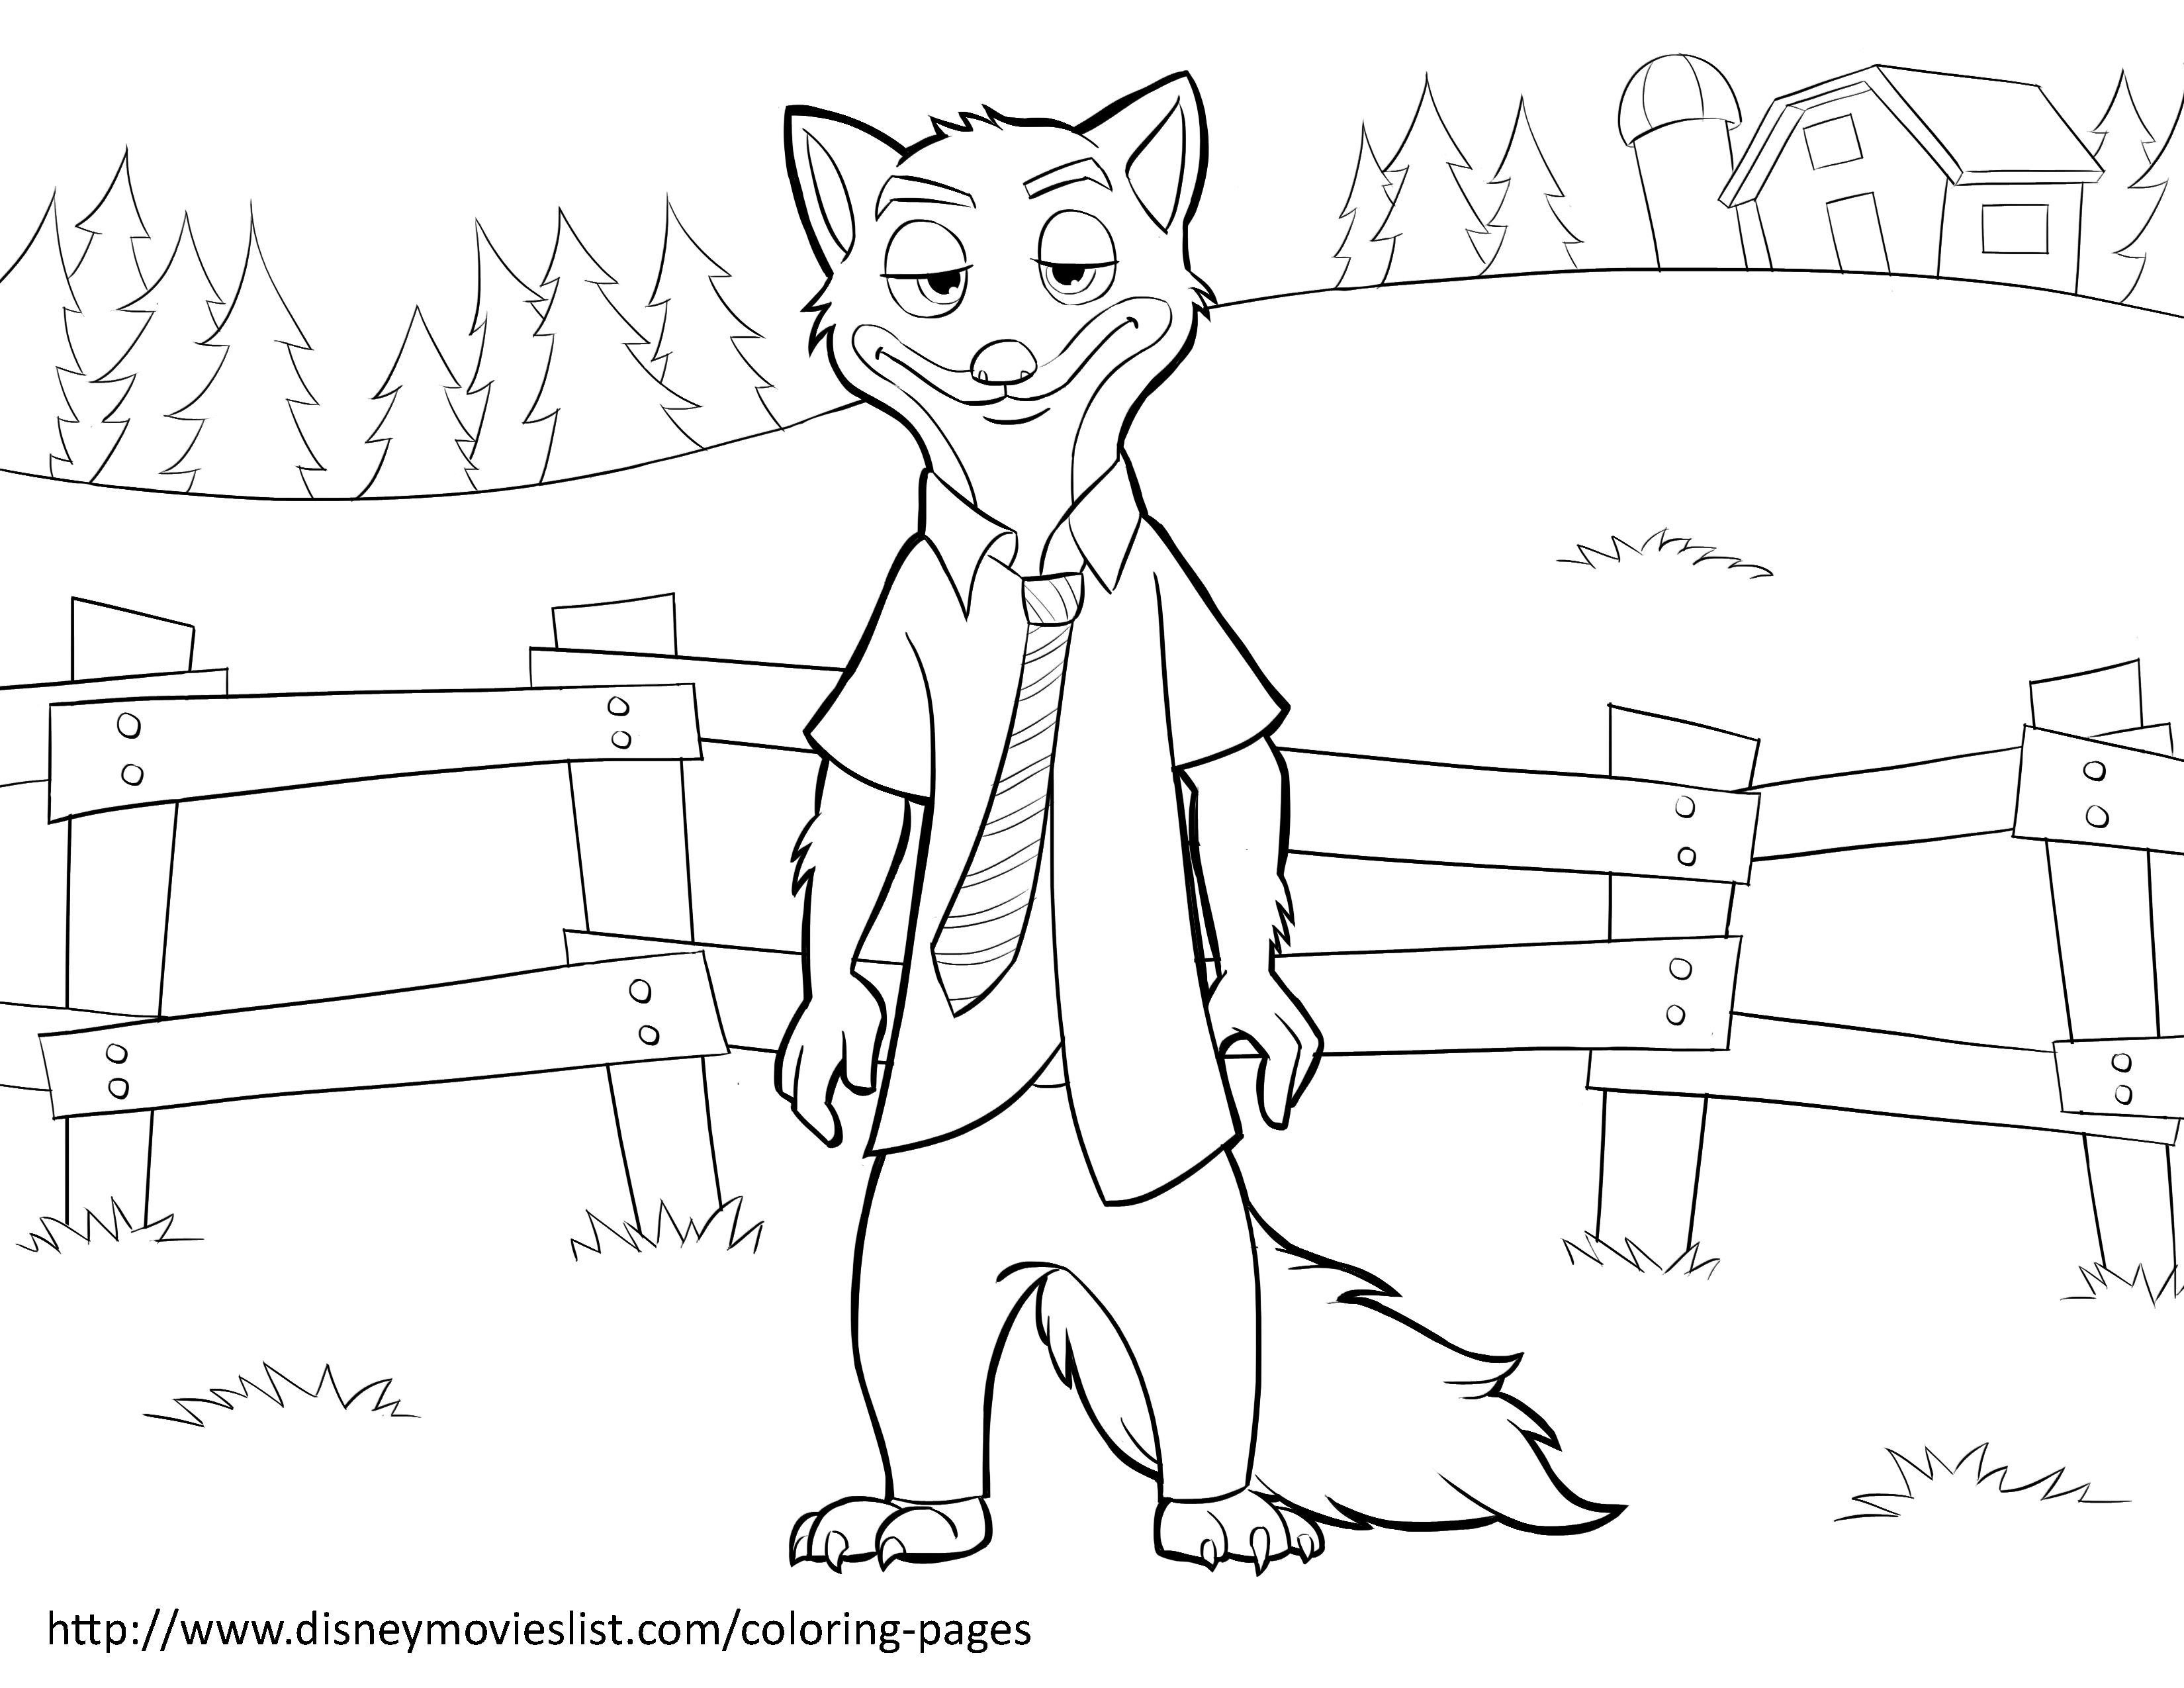 Zootopia Coloring Pages Free. Disney s ZootopiaNick Wilde Coloring Page  Zootopia